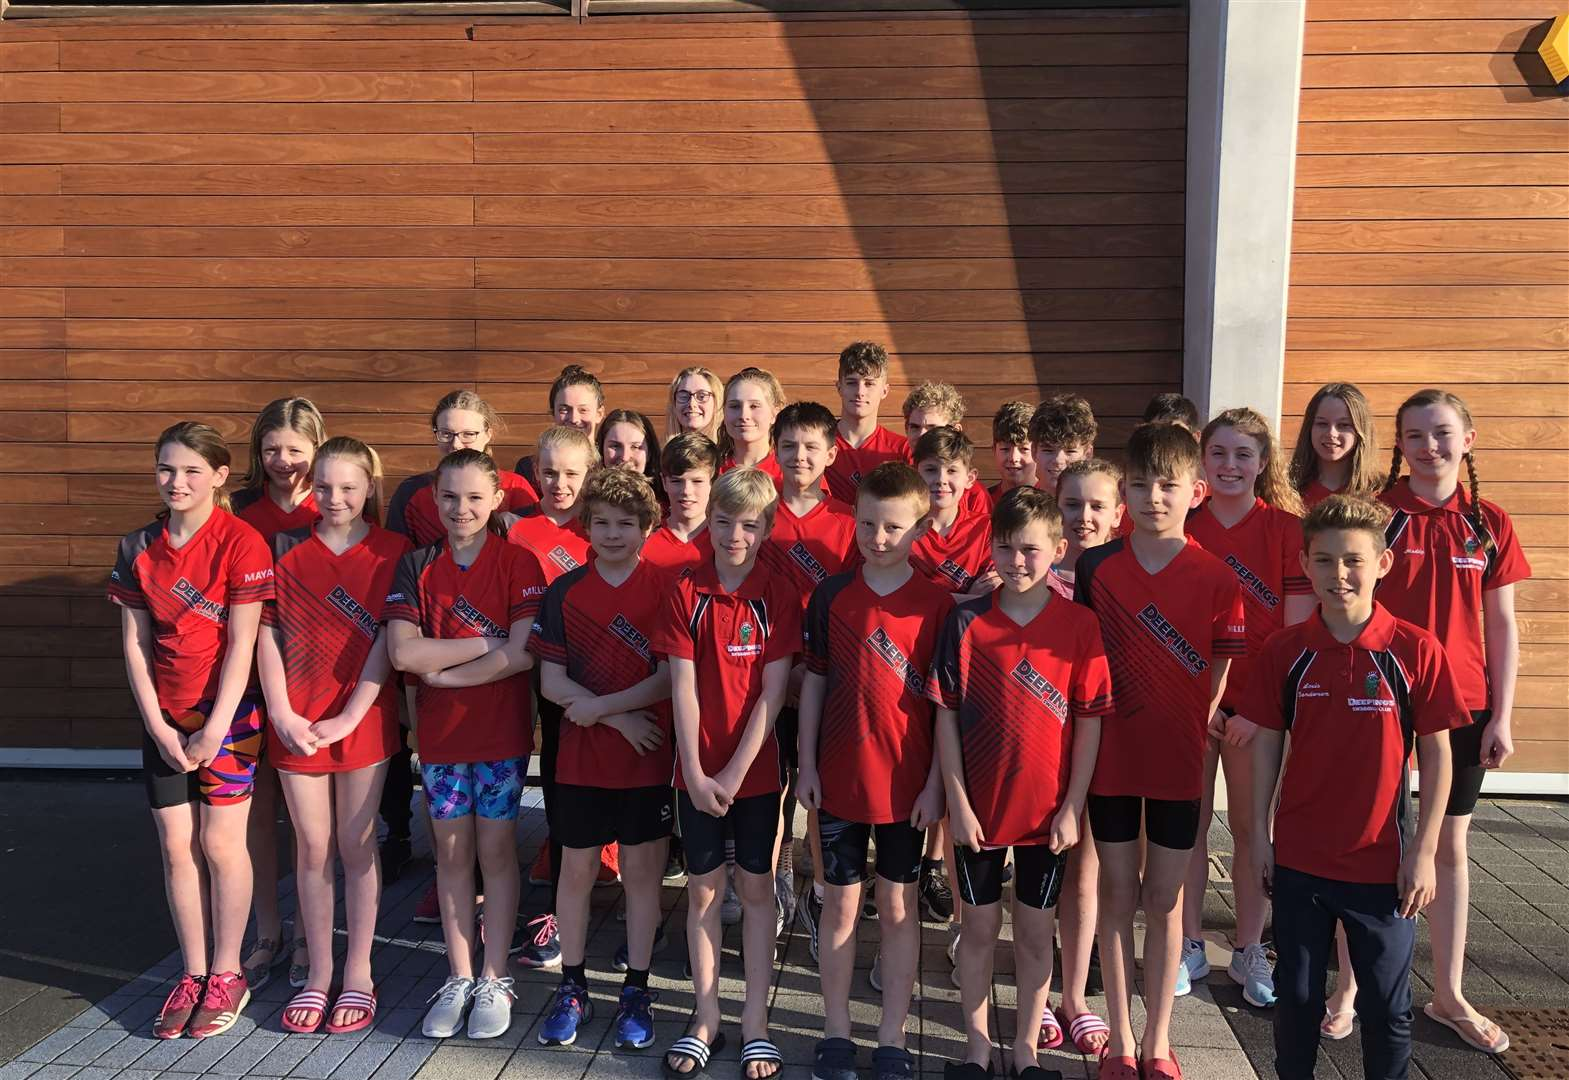 SWIMMING: Medal bonanza after magnificent weekend for Deepings swimmers